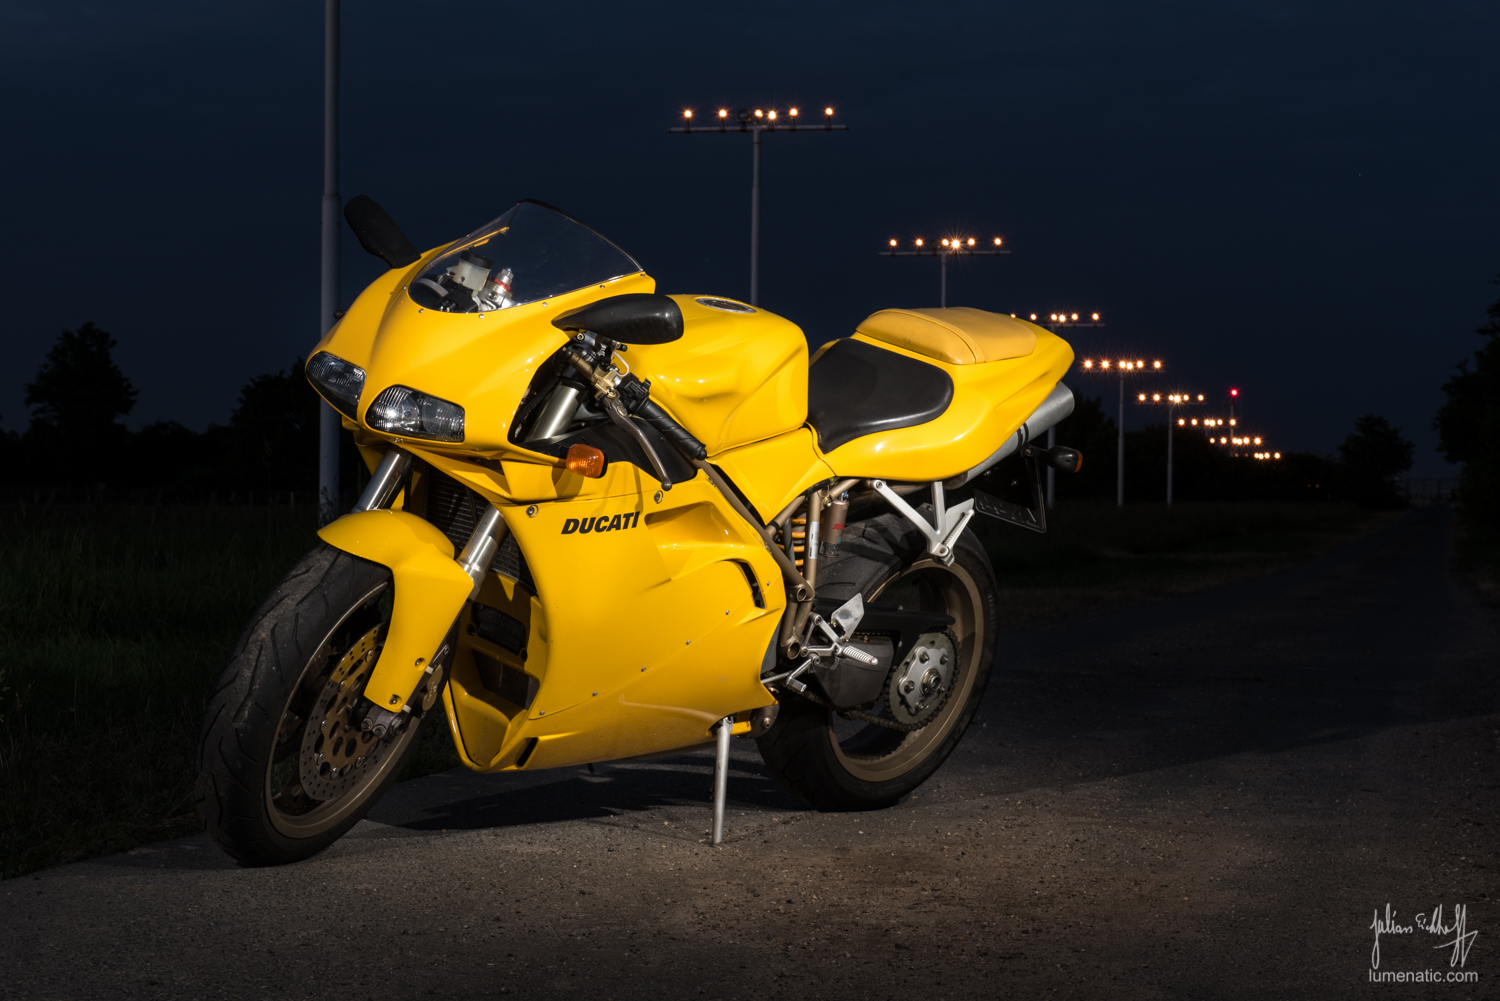 Photographing Motorbikes (Part 2/2)